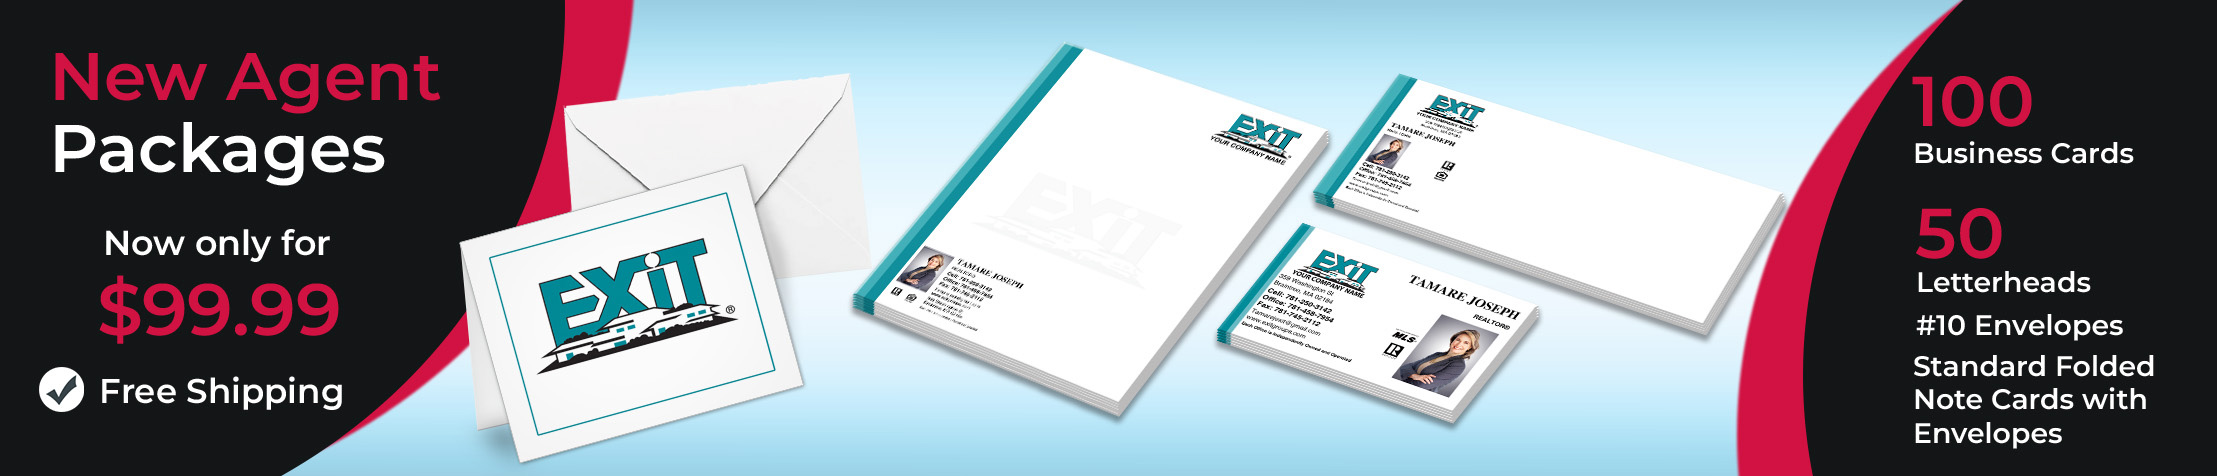 Exit Realty Real Estate New Agent Package - Exit Realty approved vendor personalized business cards, letterhead, envelopes and note cards with free shipping | BestPrintBuy.com